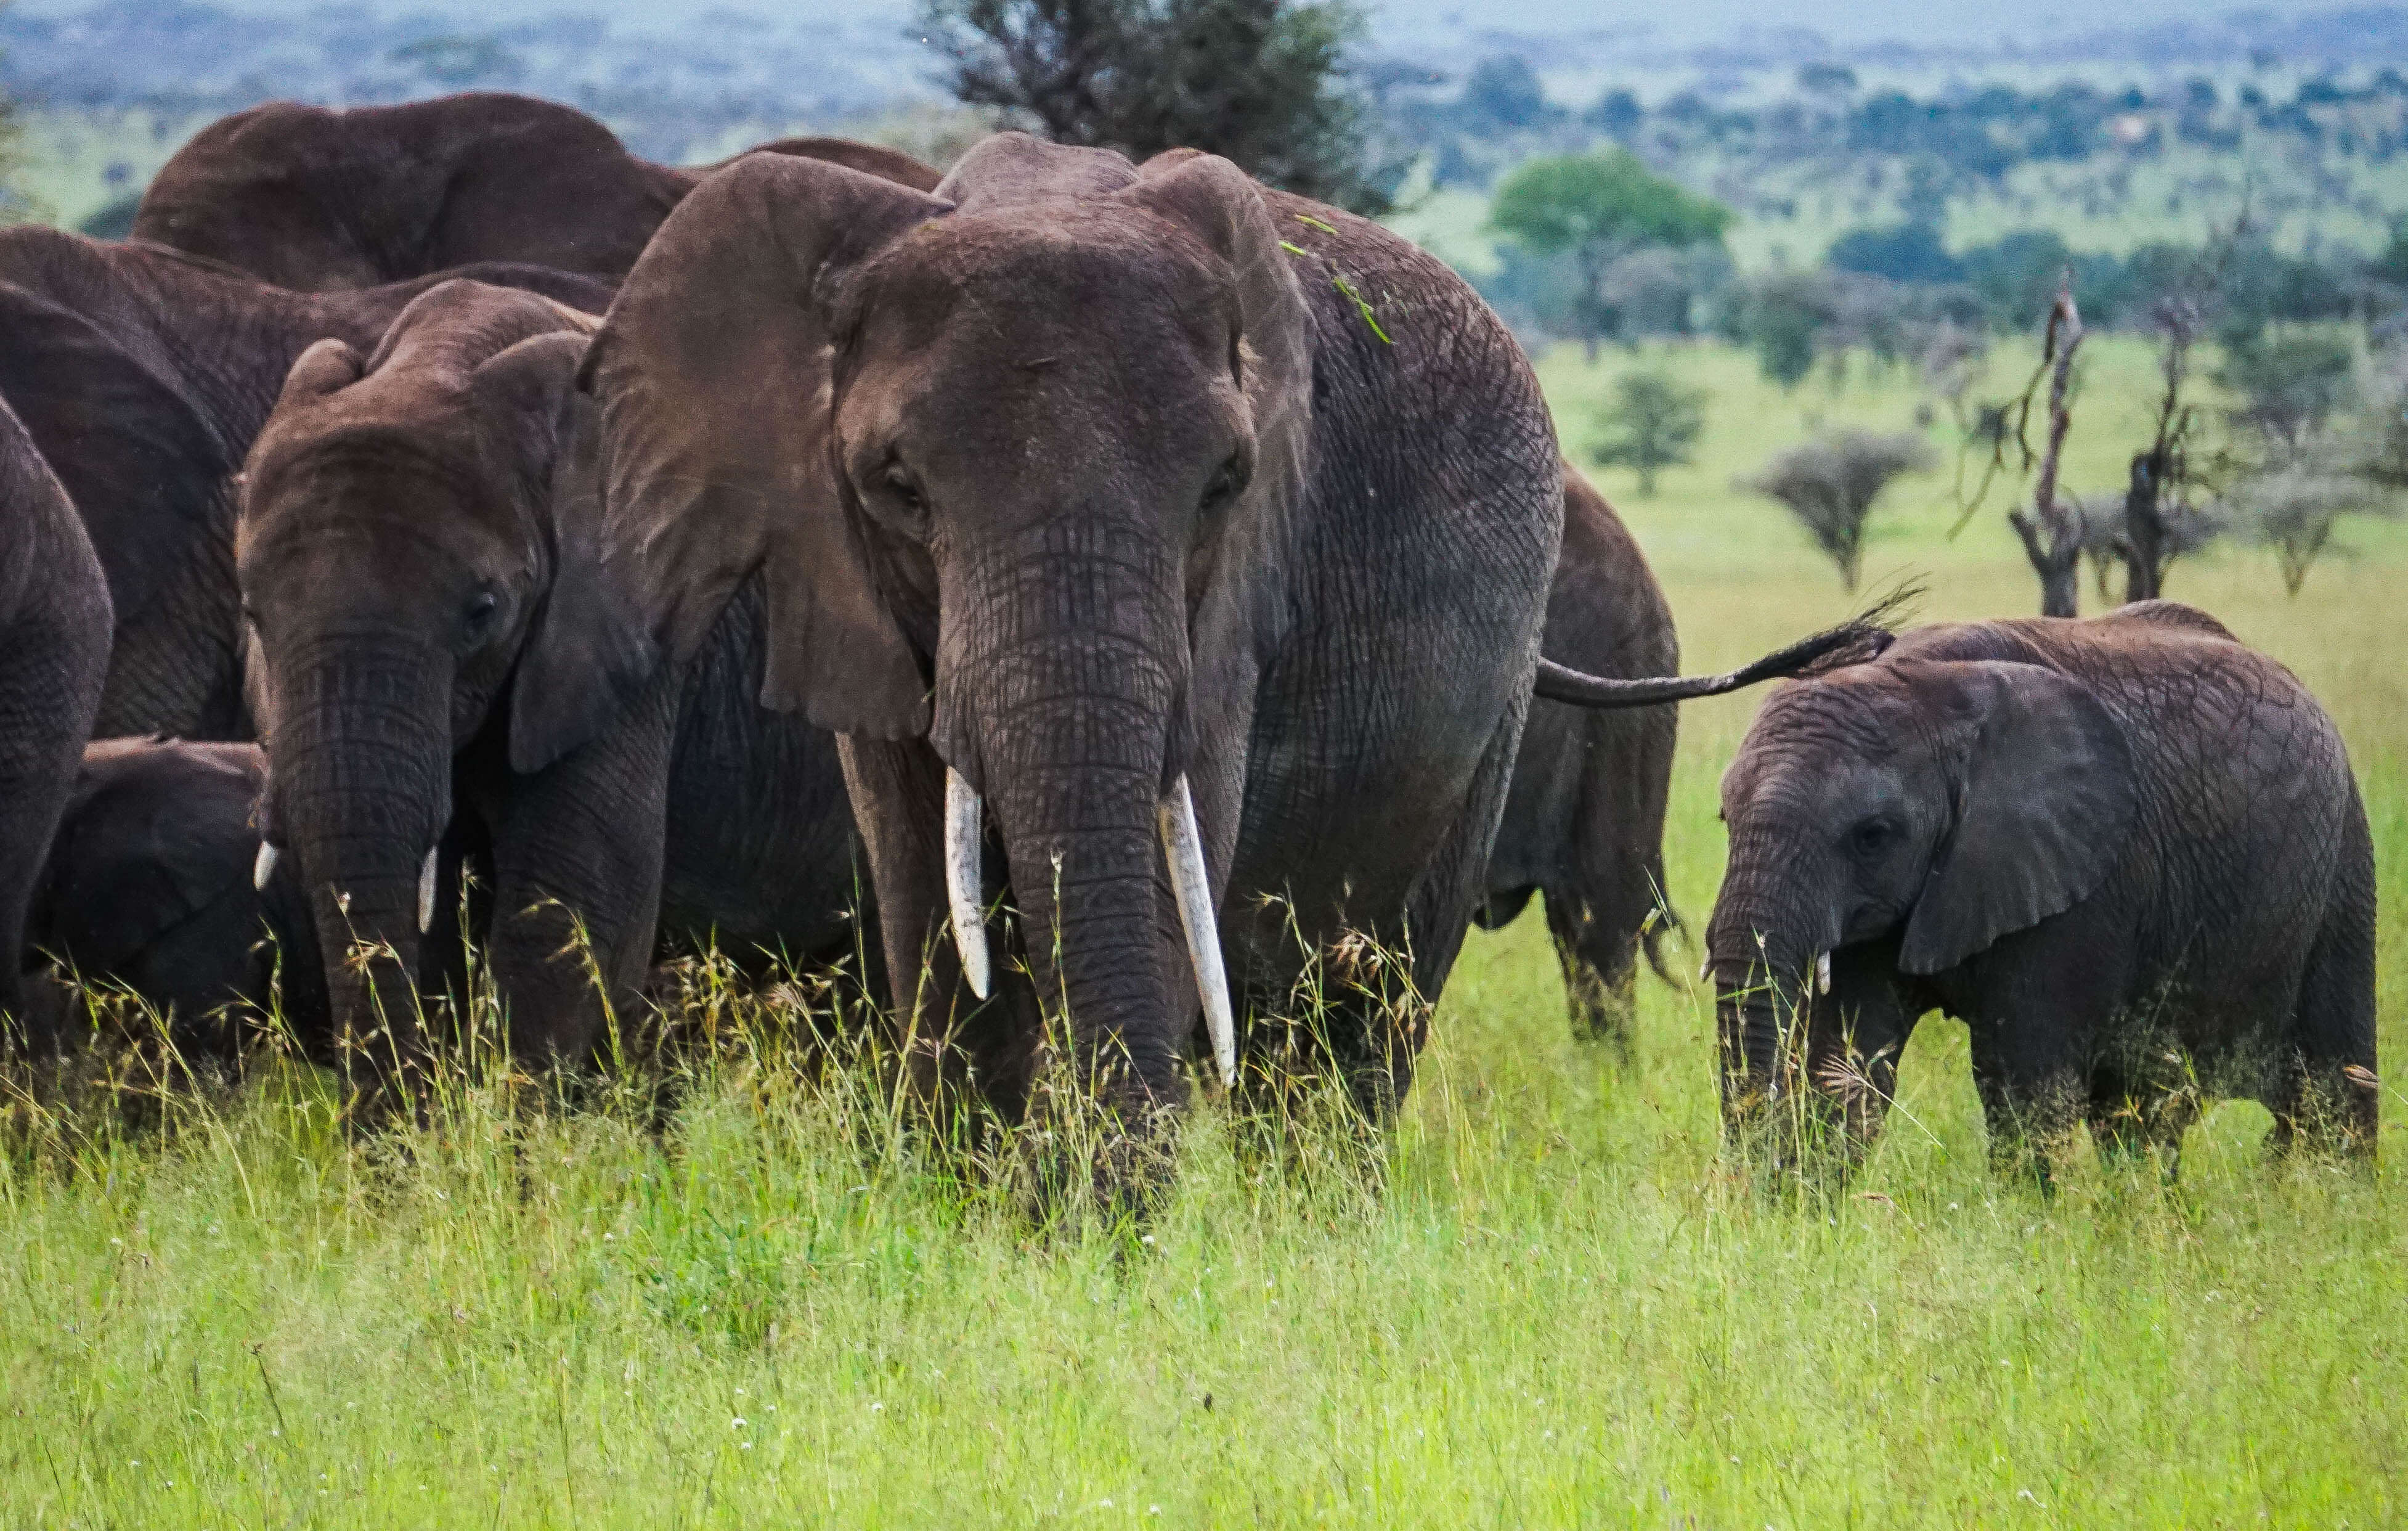 The Best Places to Safari in Africa - Elephants in Tanzania Serengeti